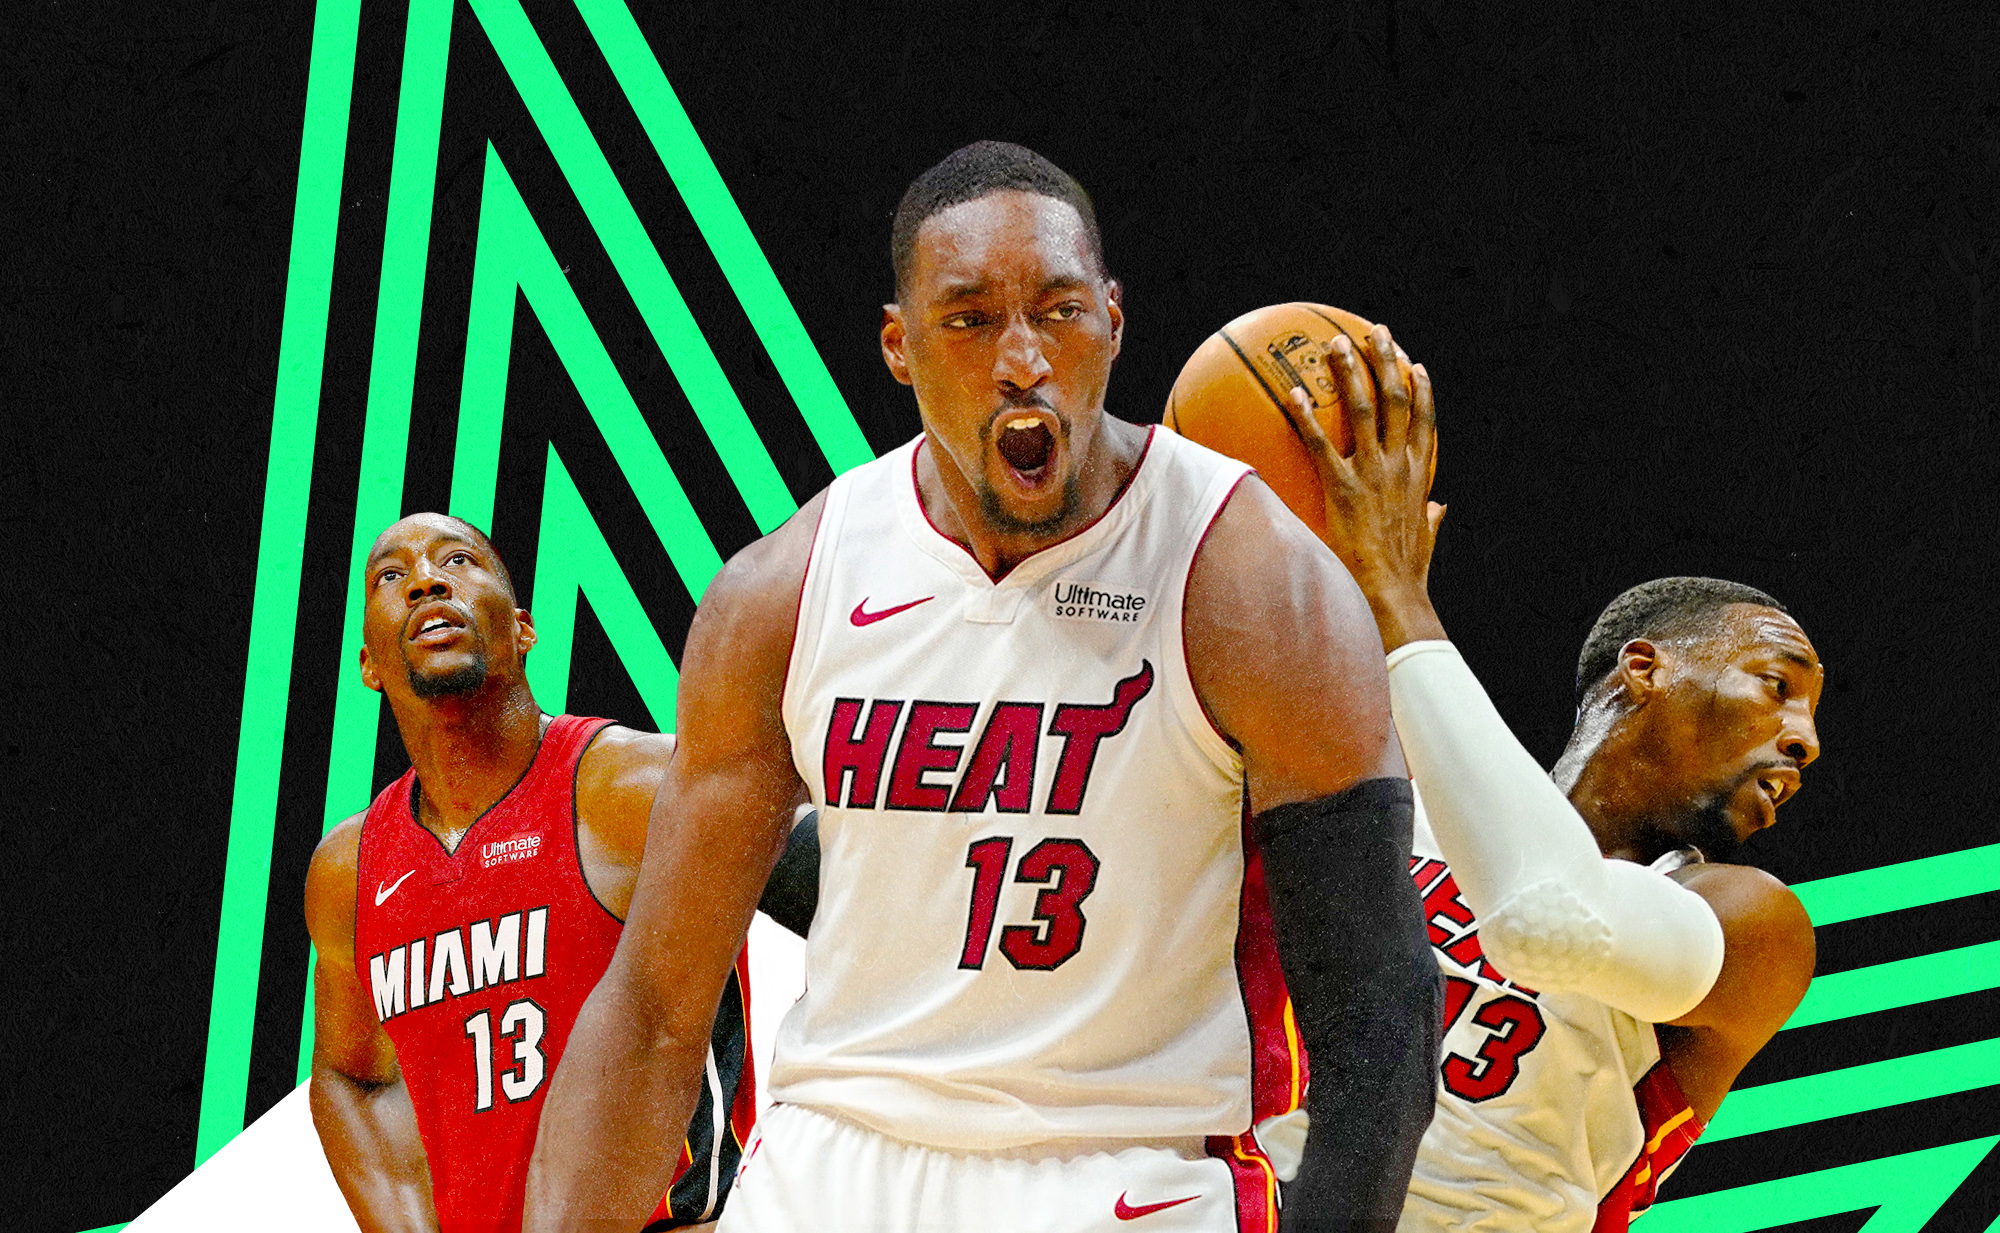 Collage of three photos of Bam Adebayo in a Miami Heat jersey, looking up with his hands on hips, celebrating after a play, and securing the basketball behind his shoulder.